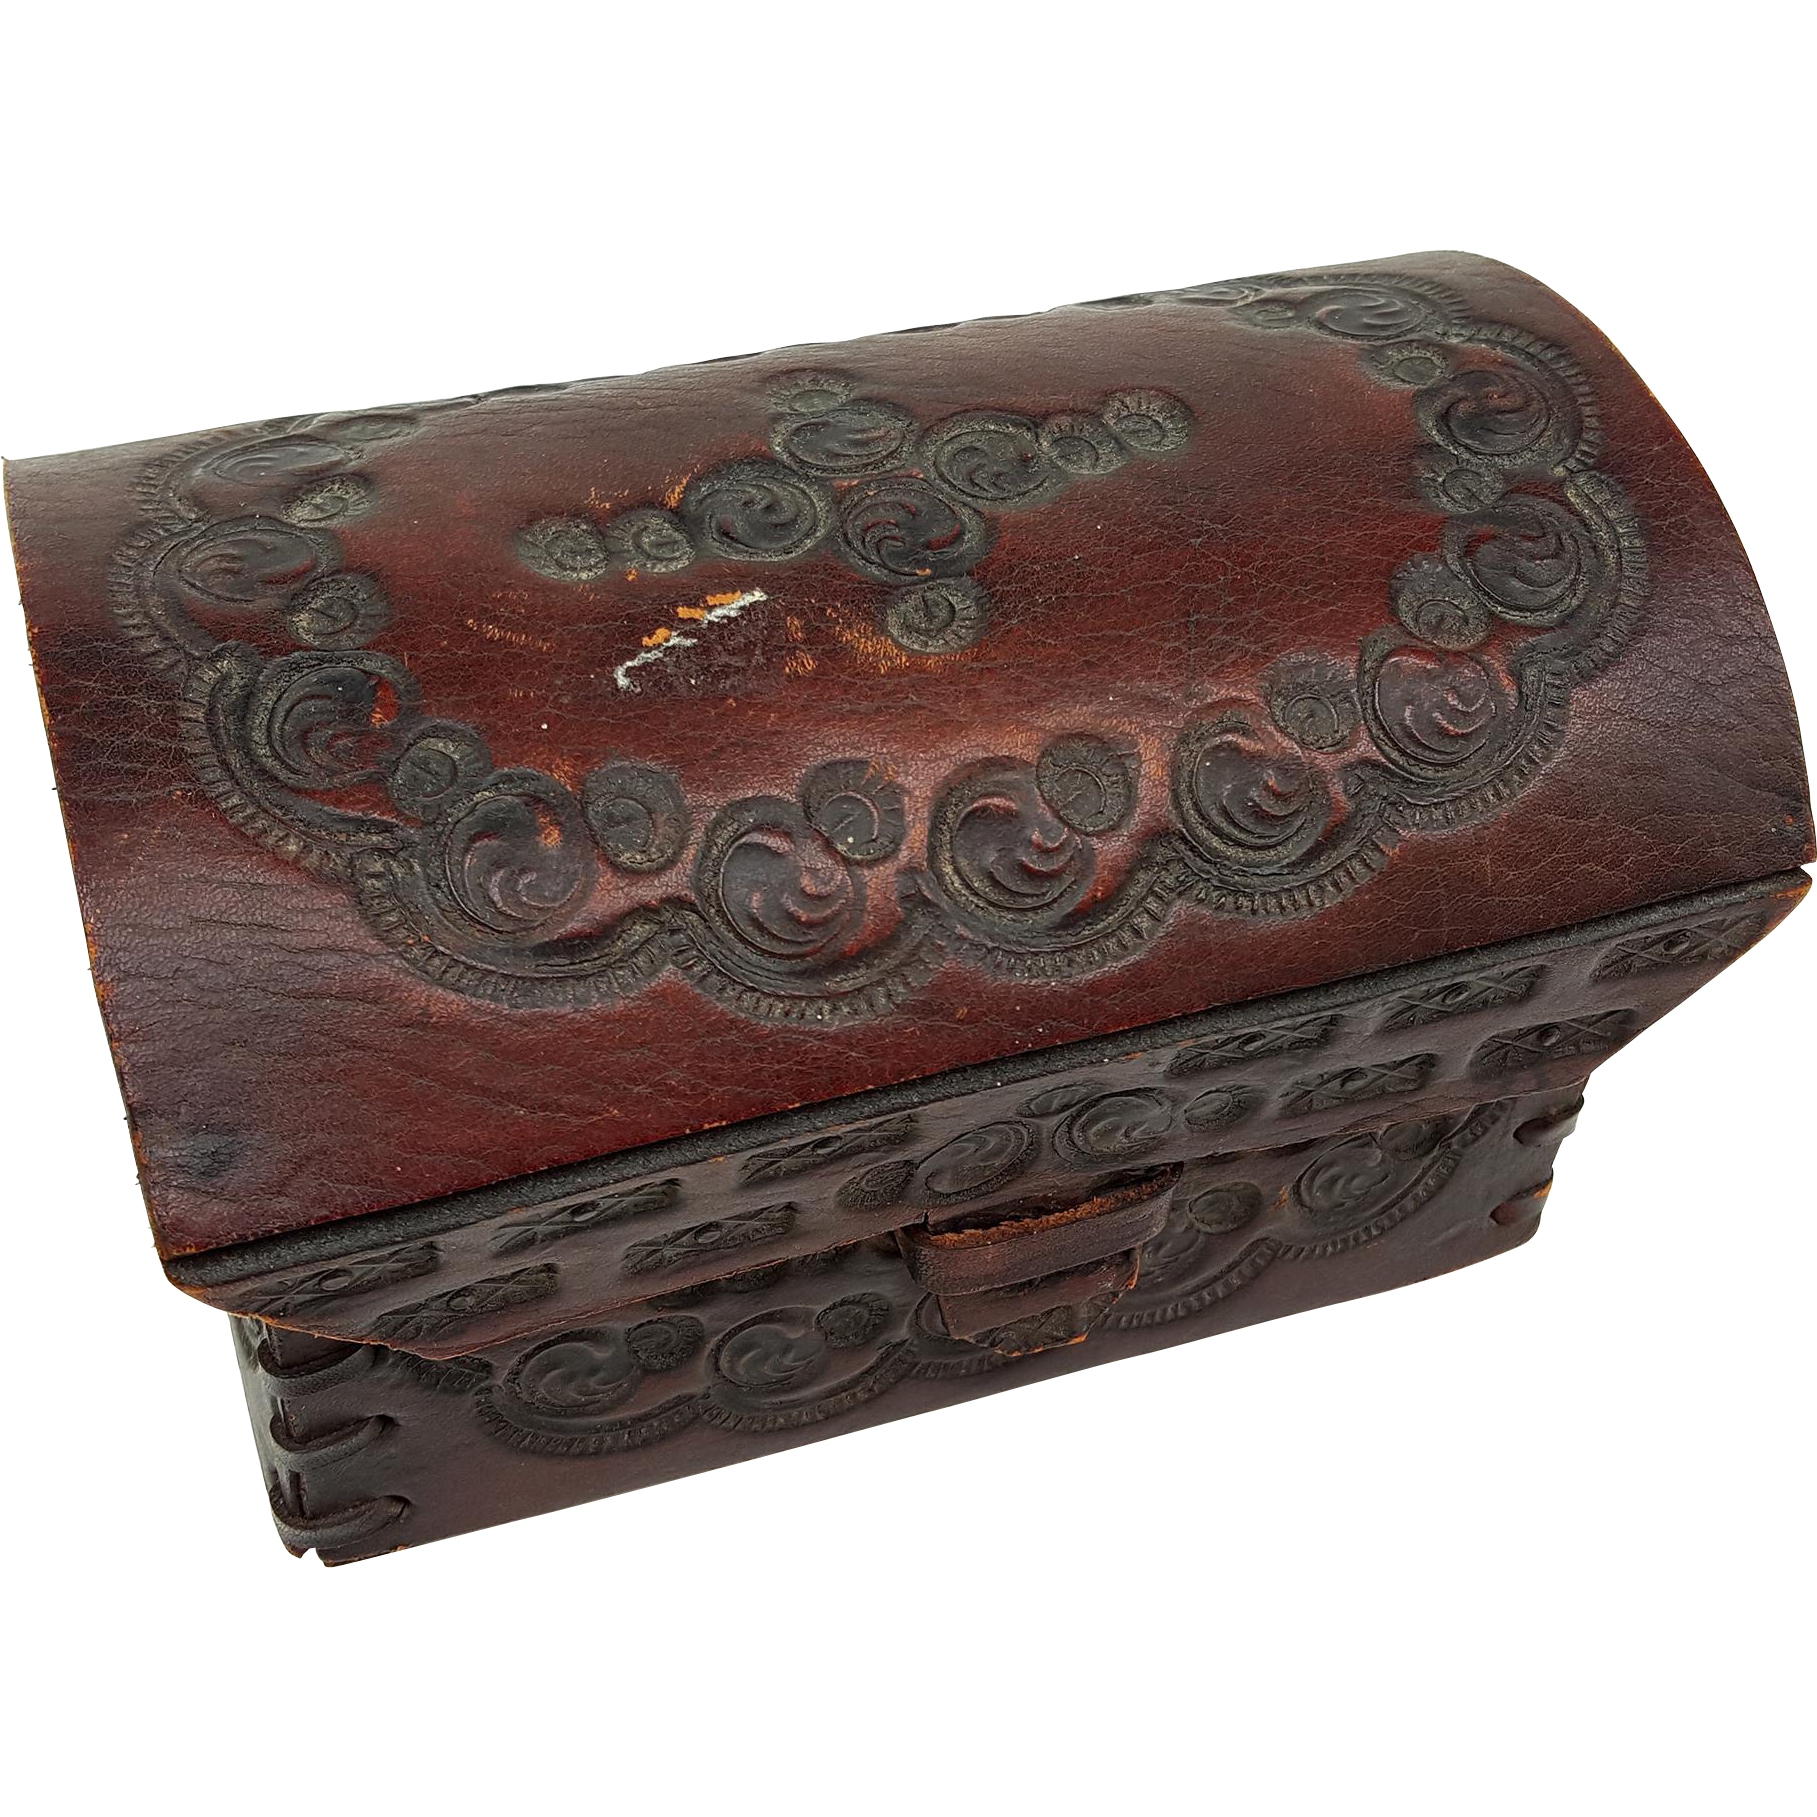 Antique miniature ornately hand tooled thick leather domed top trunk box chest doll size laced leather sides tongue loop closure 6.5 inch wide